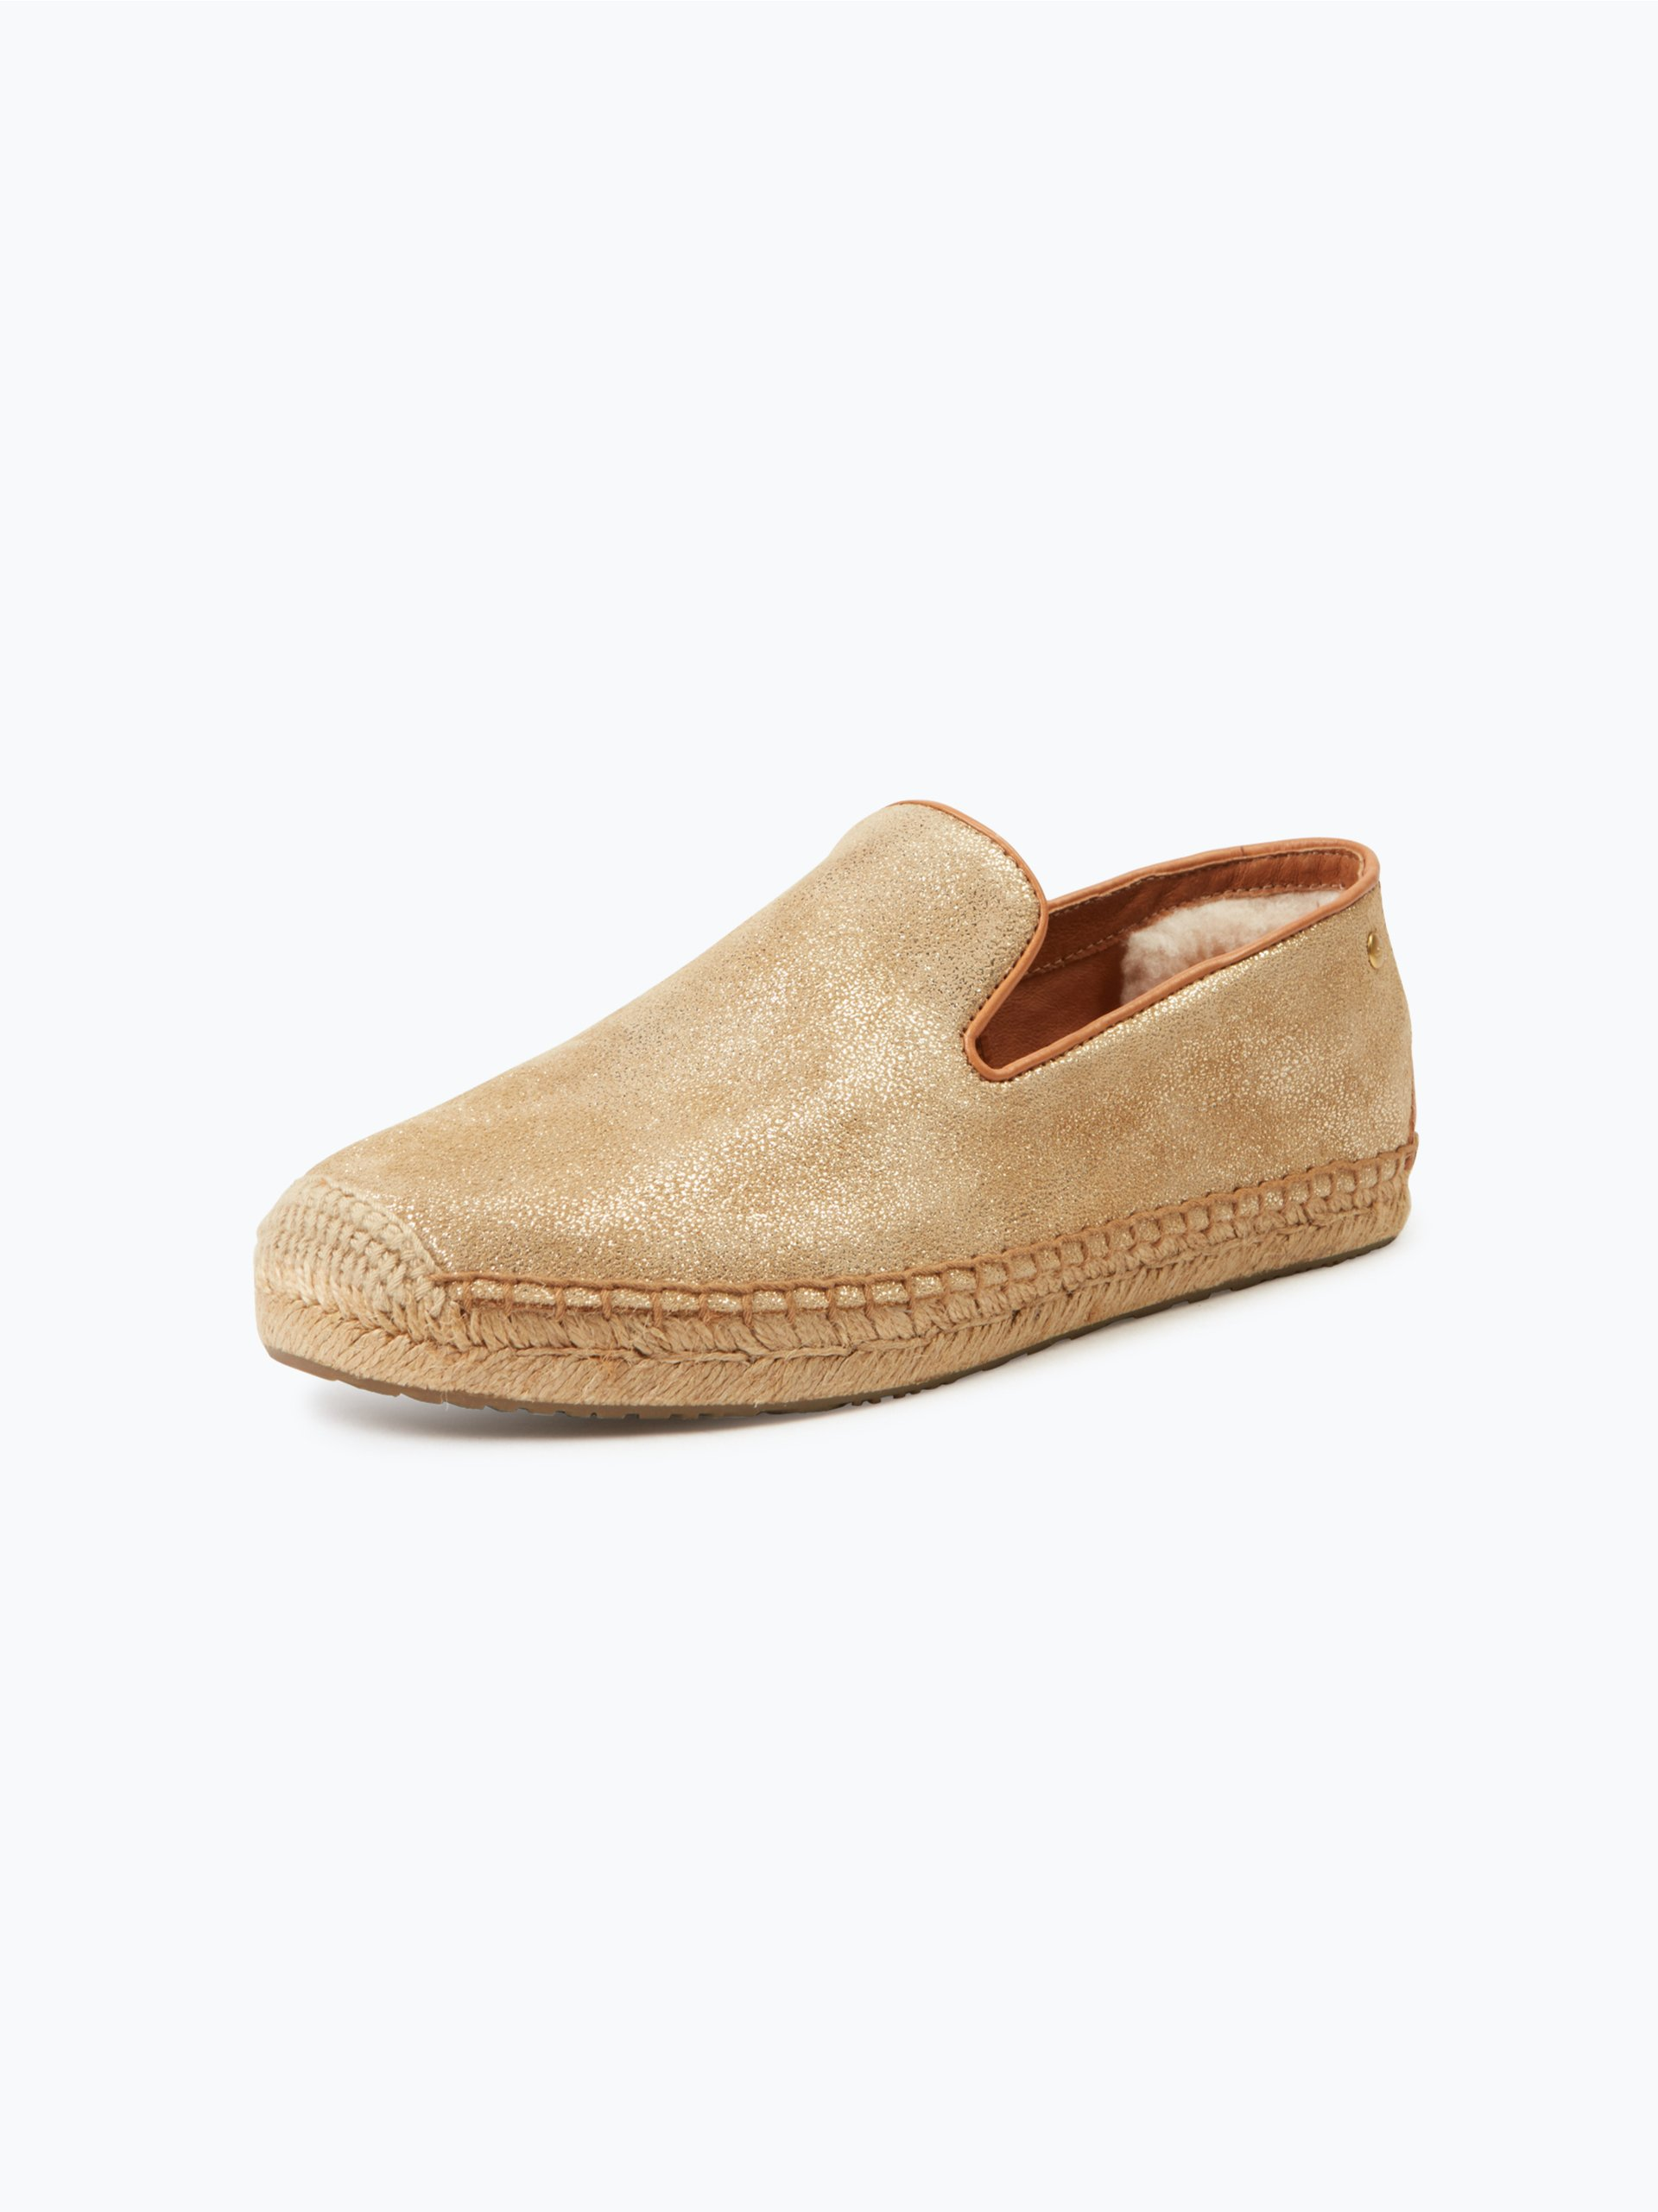 ugg damen espadrilles aus leder w sandrinne ii gold uni online kaufen peek und cloppenburg de. Black Bedroom Furniture Sets. Home Design Ideas